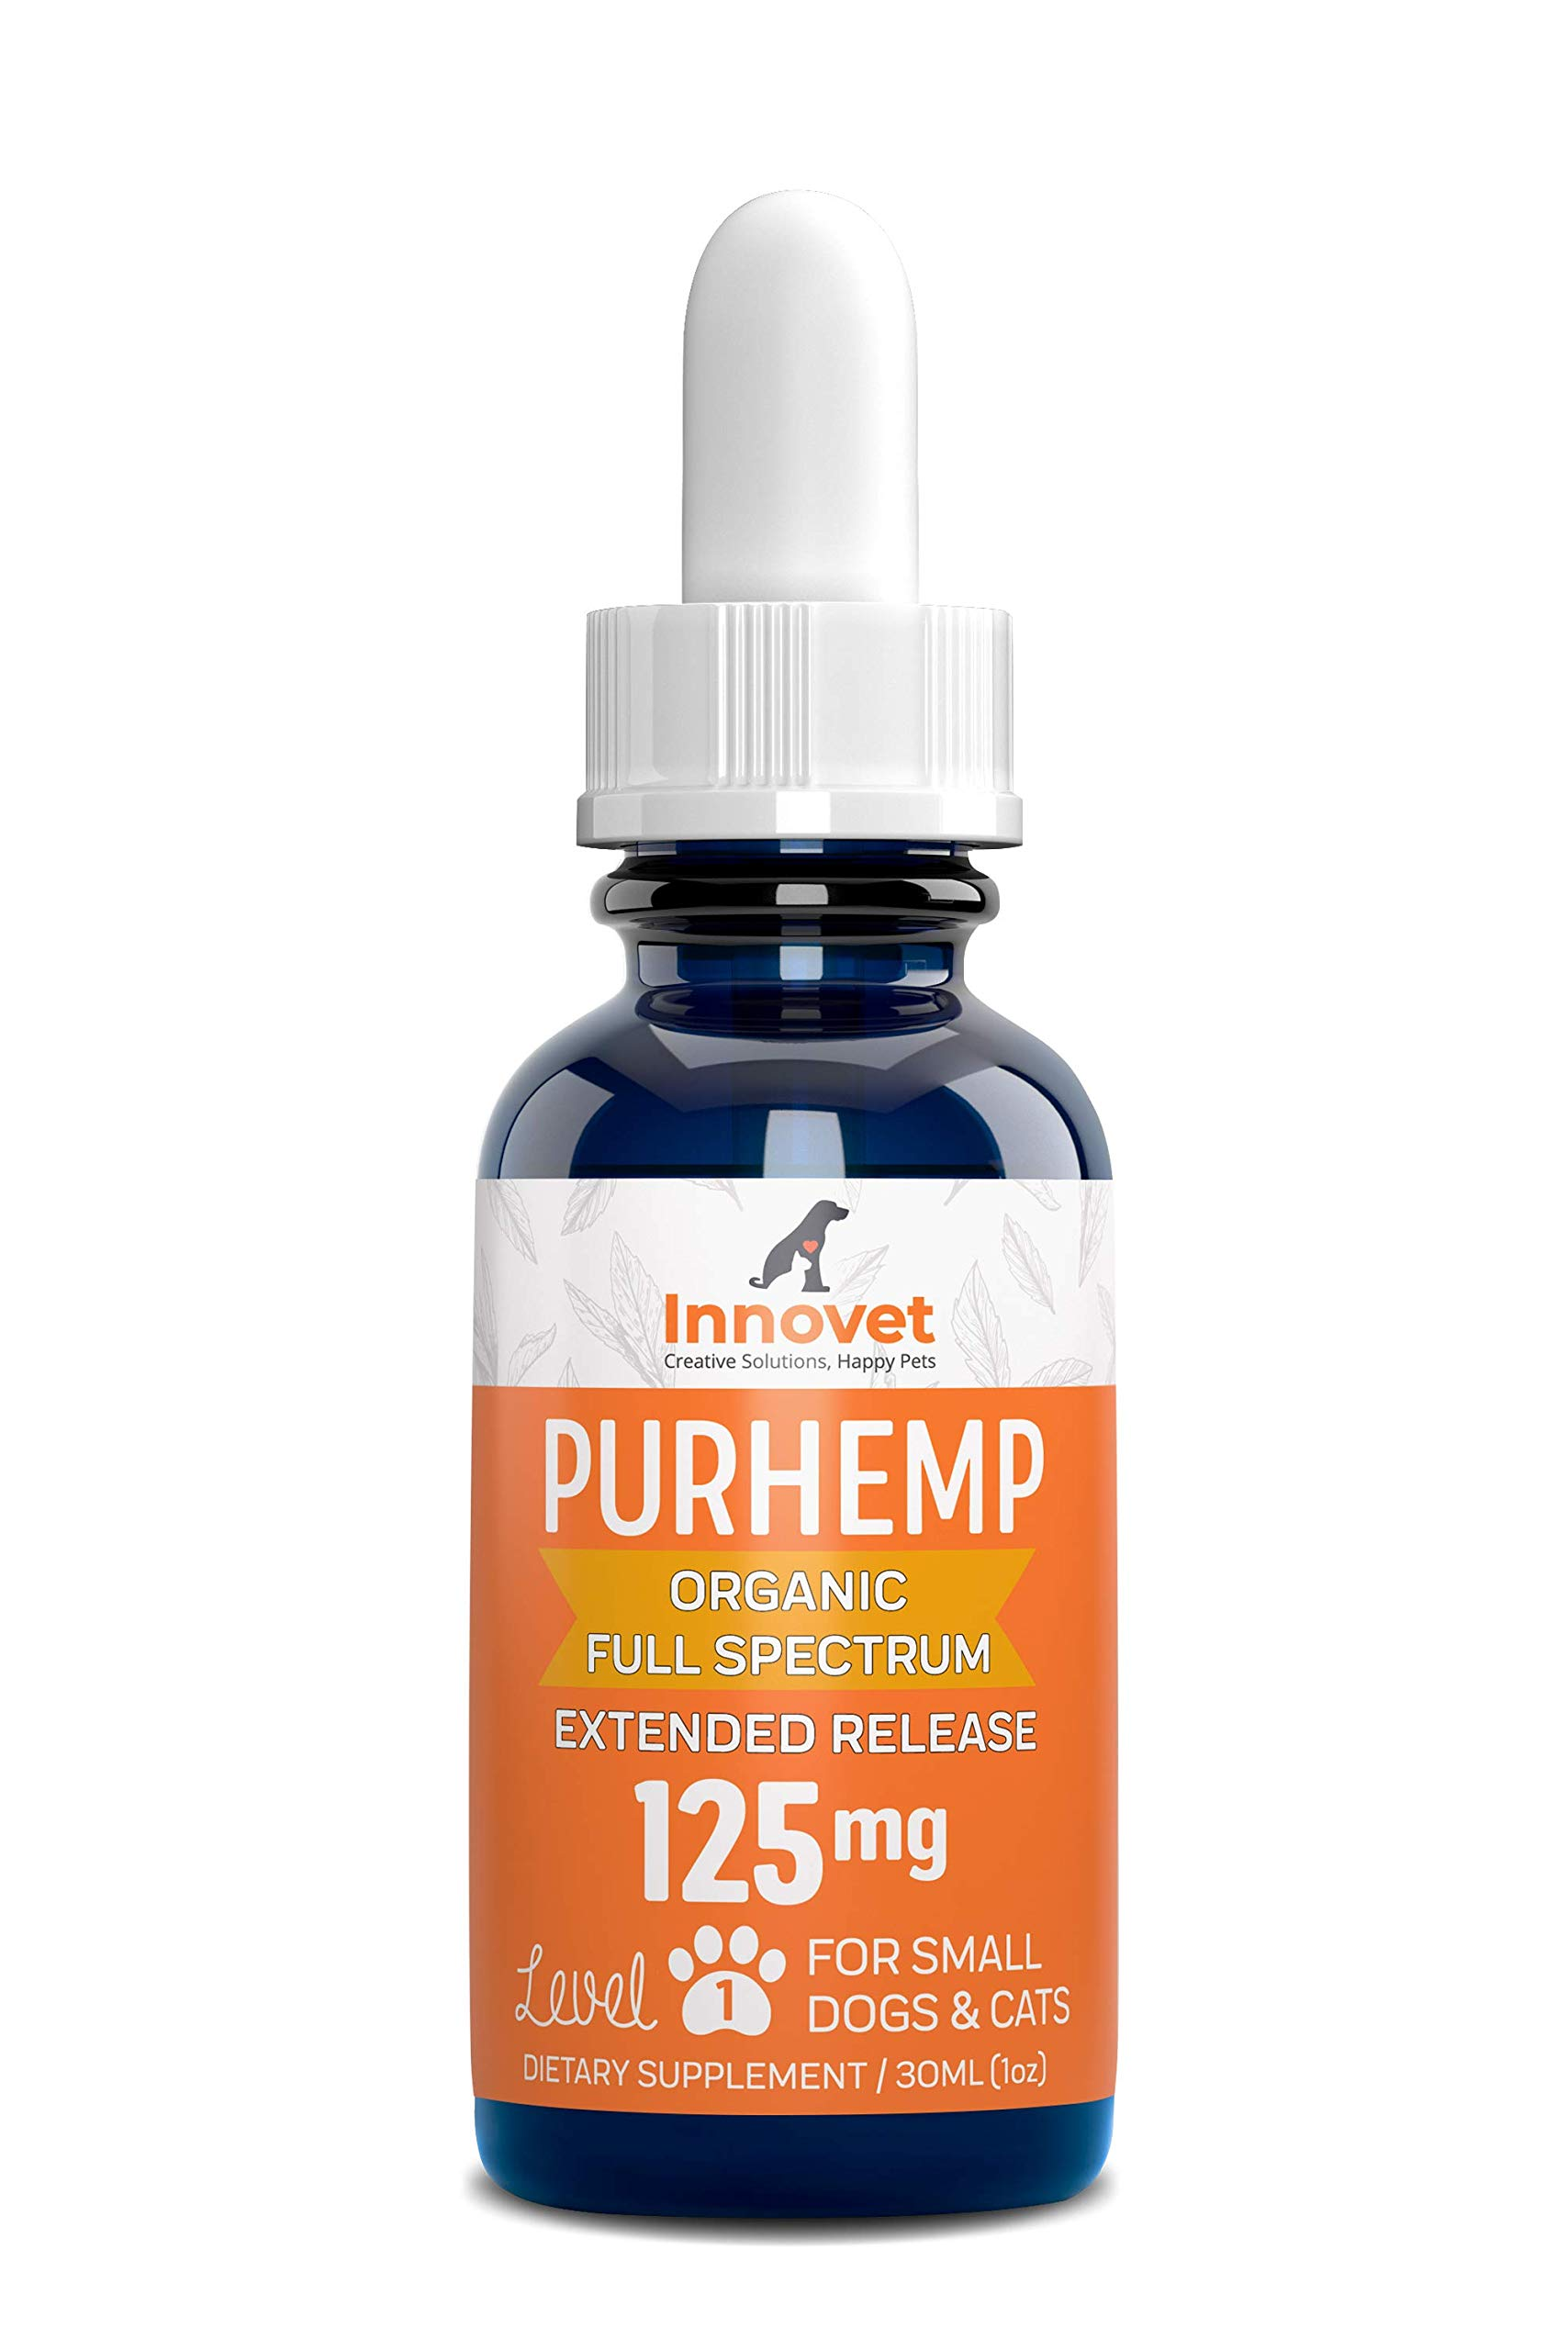 Innovet Pet Products - PurHemp+ Hemp Oil for Dogs and Cats: 100% Organic Natural Calming Drops - Anxiety Support - Hip and Joint Health - Pain Relief for Pets: Made in The USA (125mg PurHemp+) by Innovet Pet Products